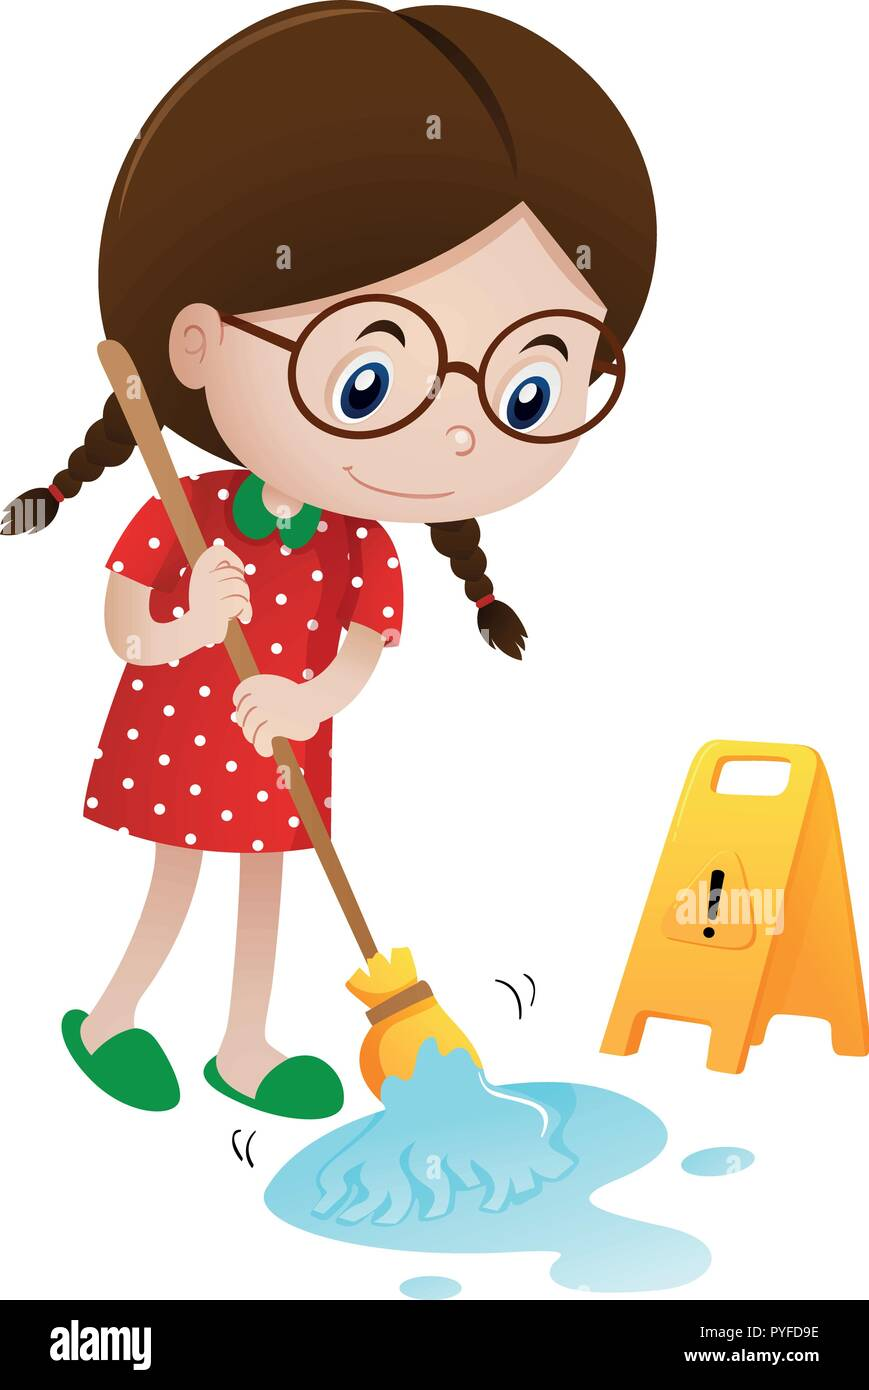 Girl cleaning wet floor with mop illustration - Stock Vector